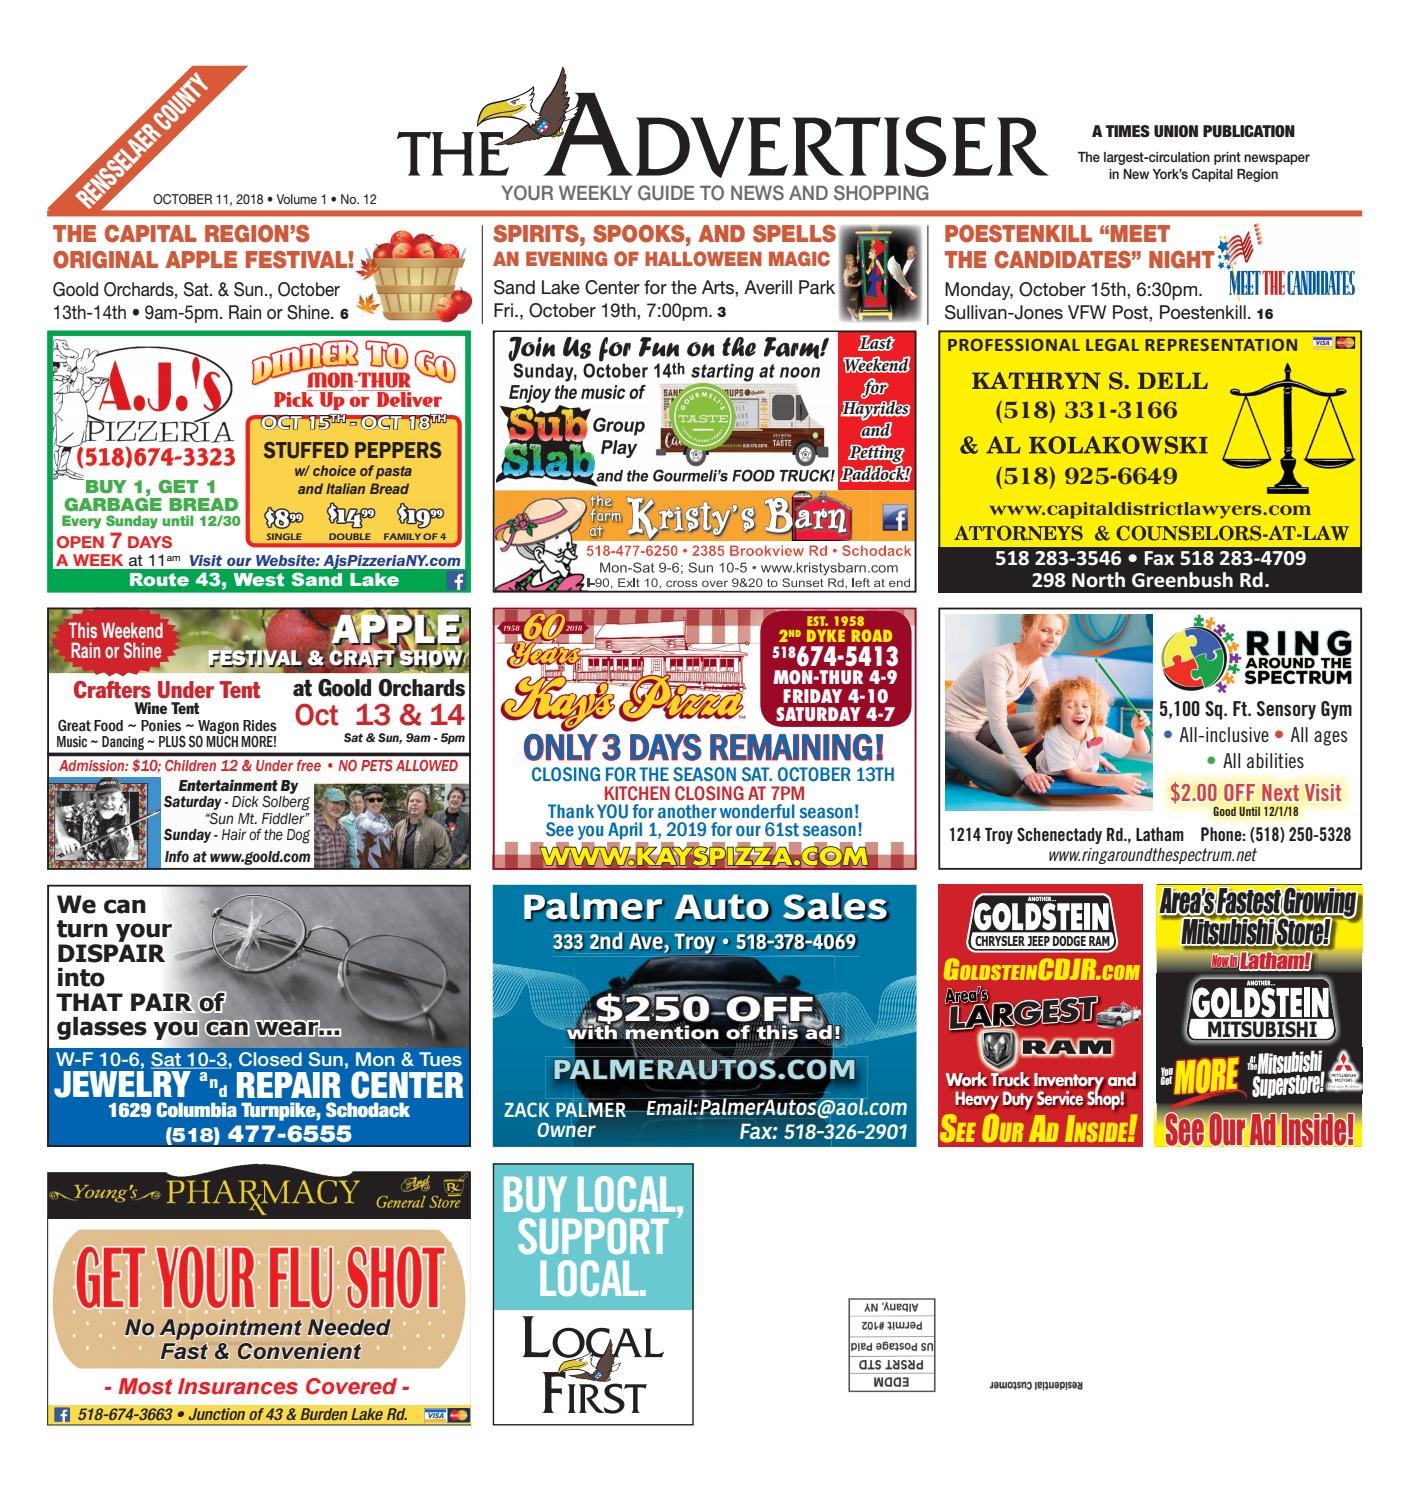 1aa943c8830 Local First The Advertiser 101118 by Capital Region Weekly Newspapers -  issuu